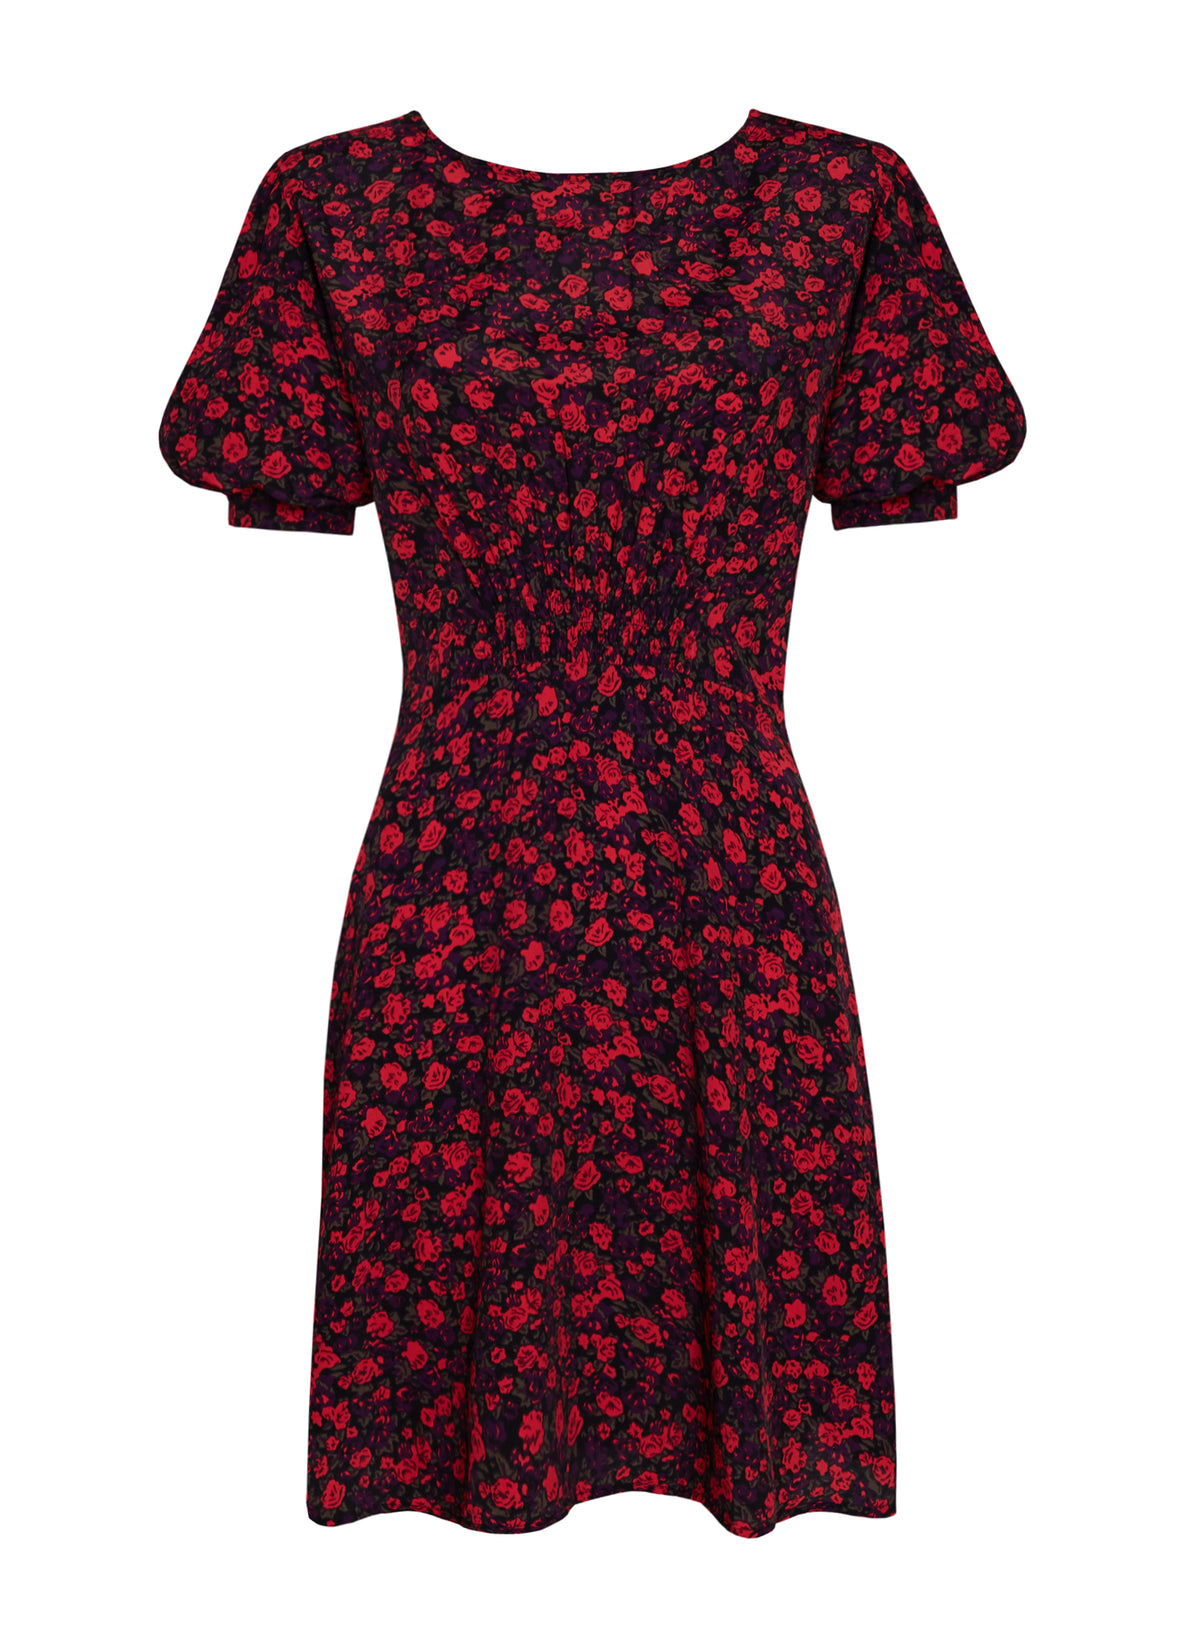 Faithfull The Brand - Sidonie Mini Dress | Floral Print